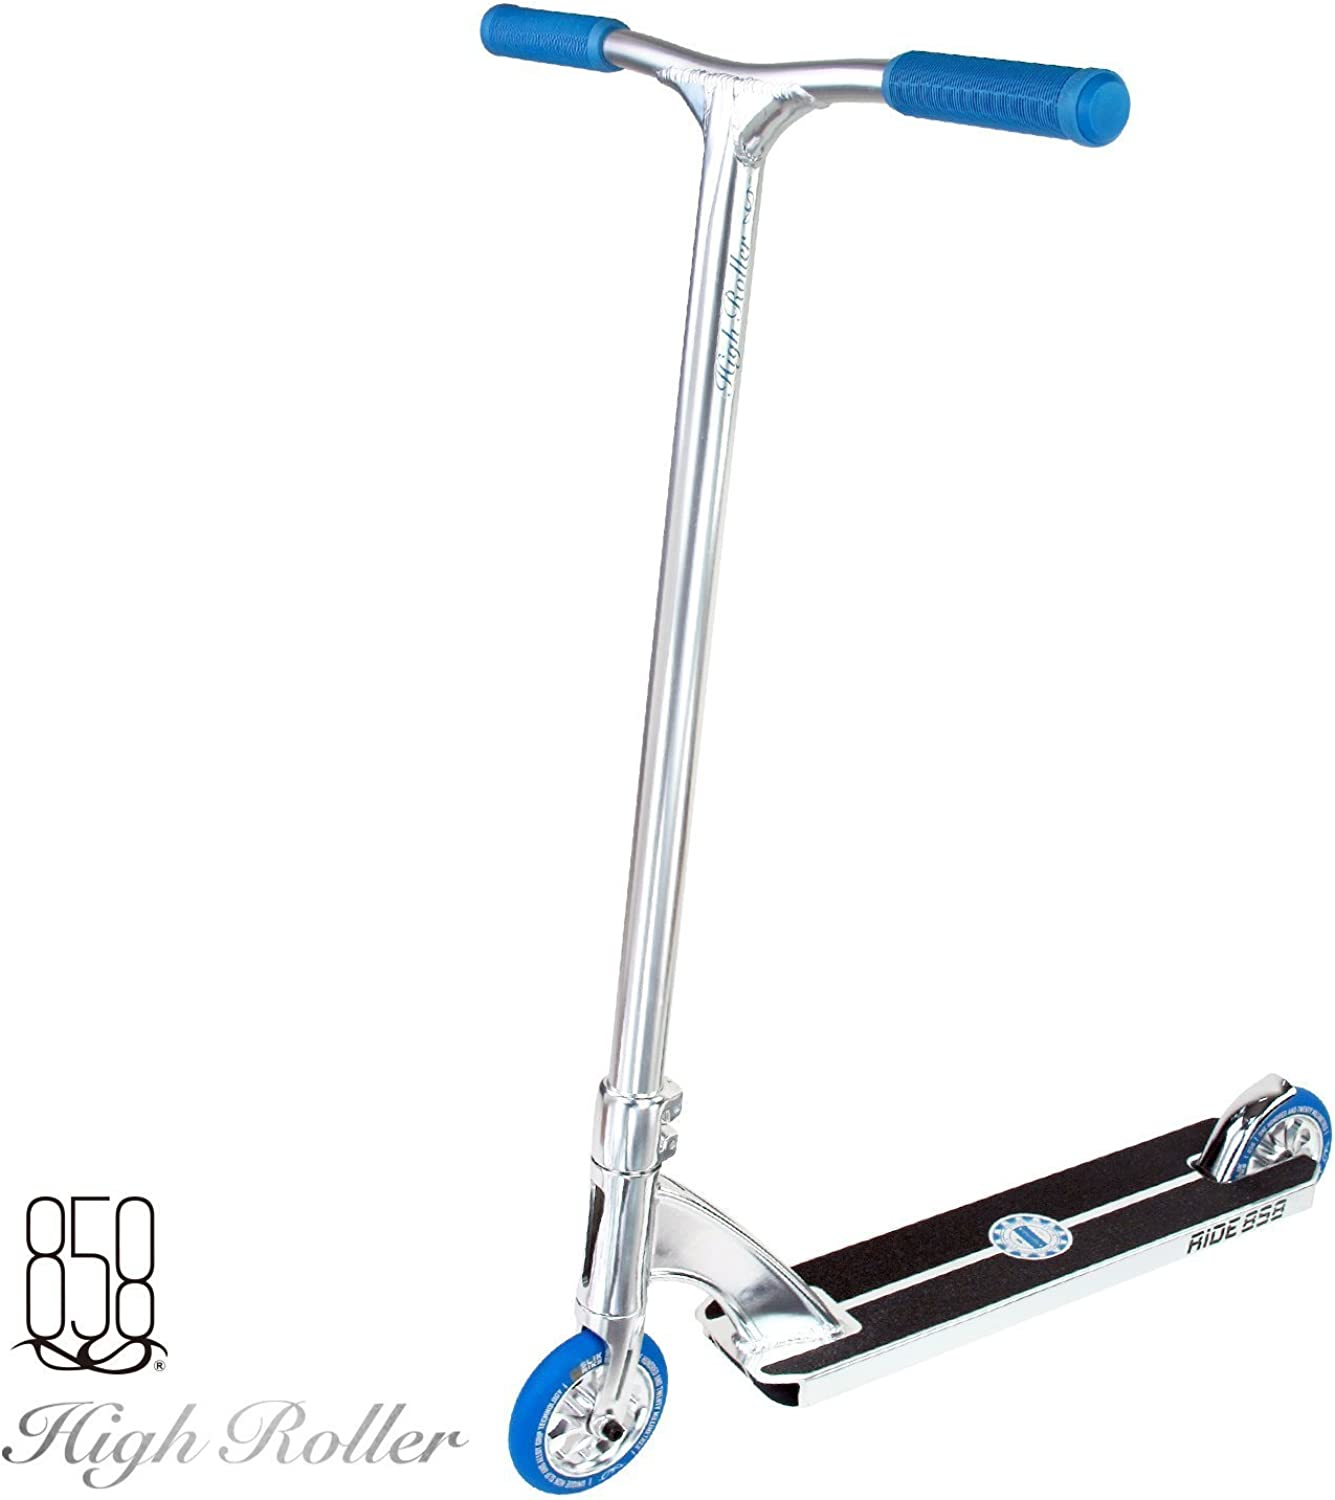 2016 High Roller Scooter With Forged Neck Tube To Avoid Breaks + Light Strong Deck With Patent Reinforced Aluminium Bar For The Ultimate Performance By Ride 858 (CHROME blueE)